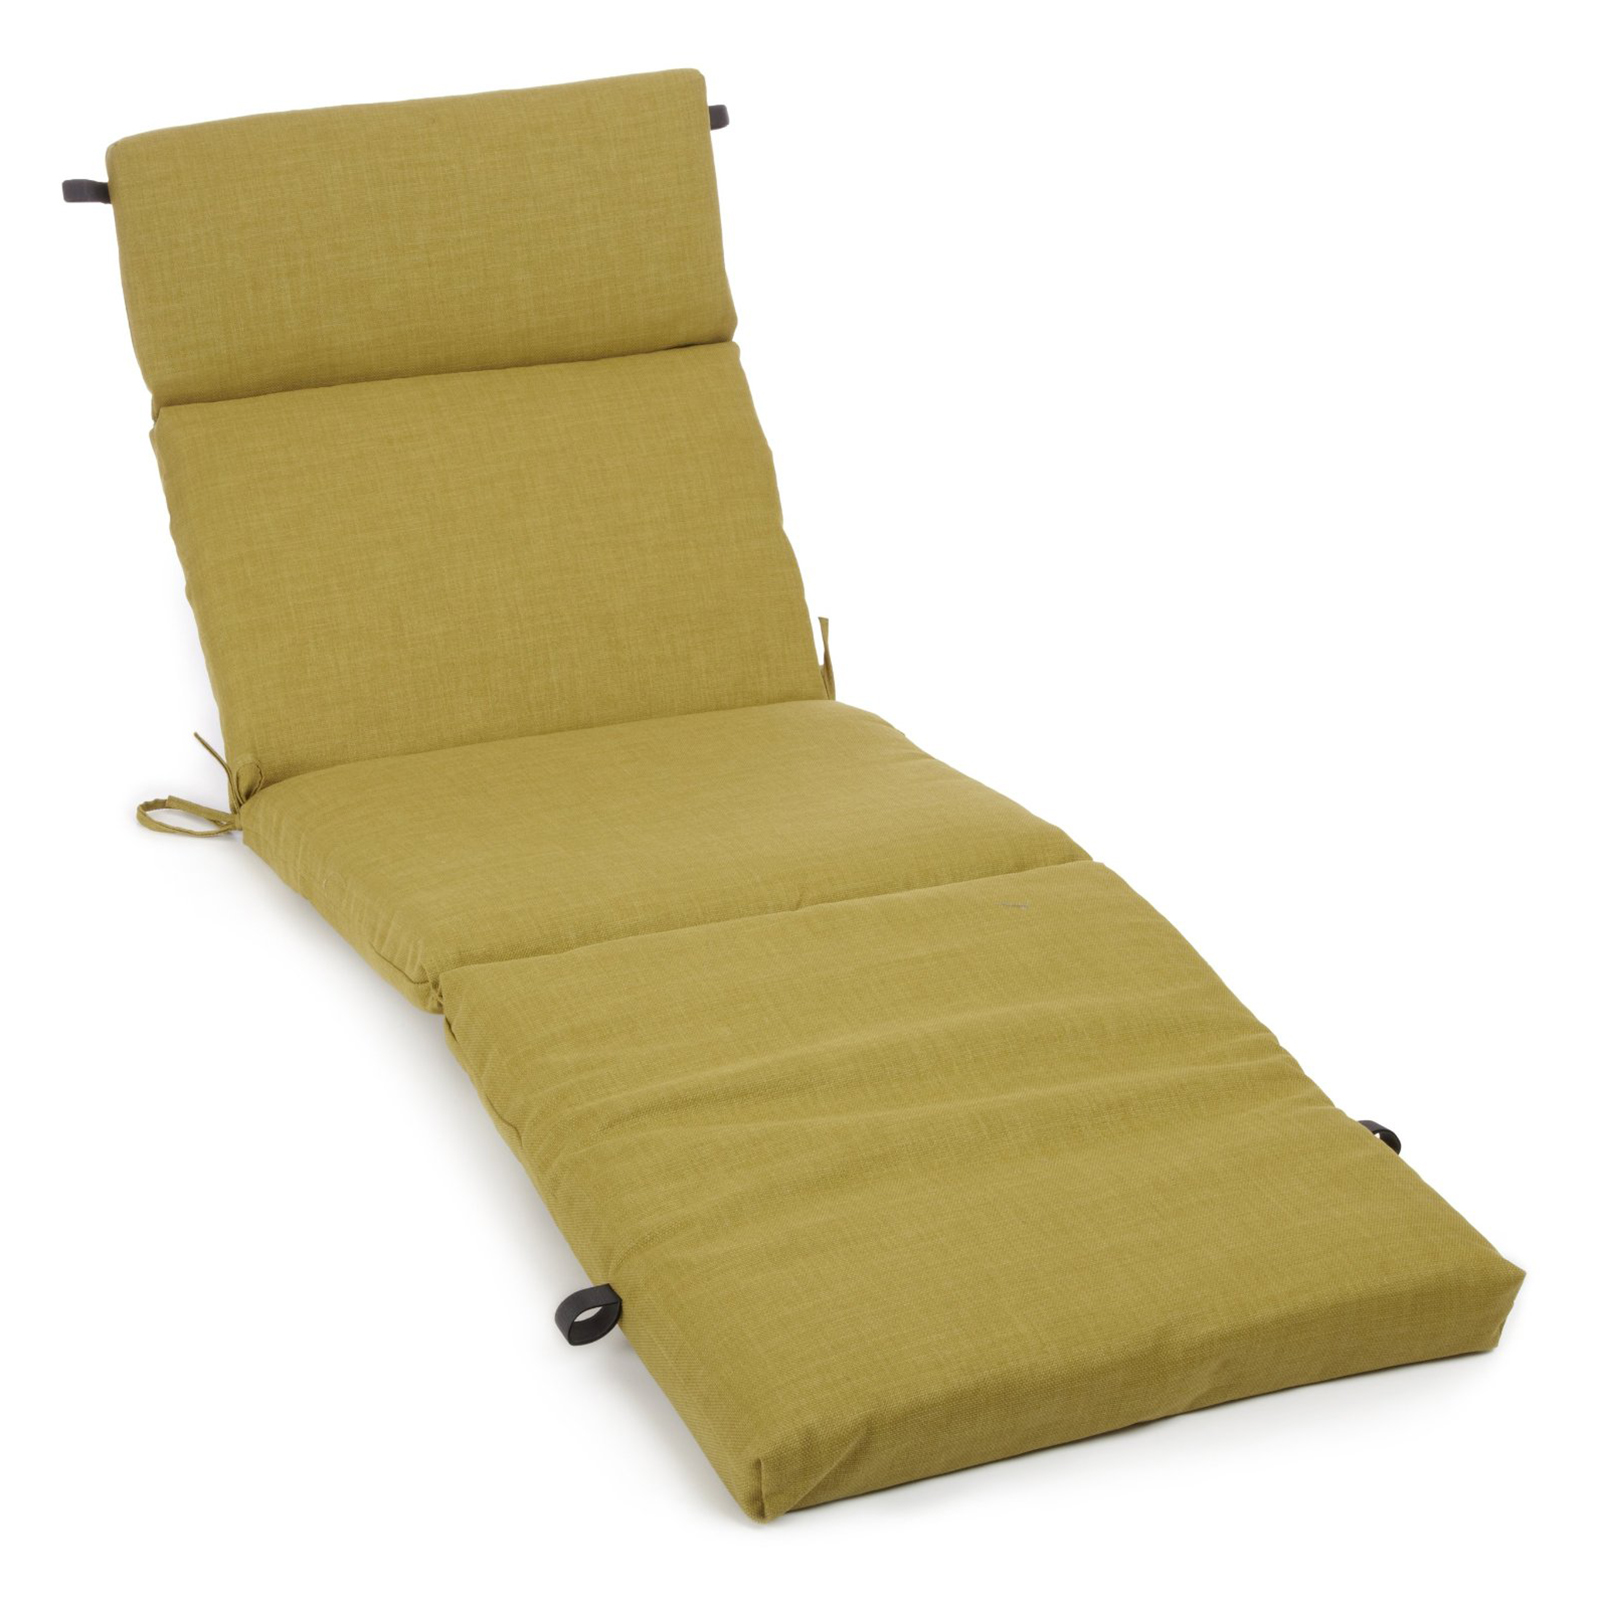 Blazing needles 72 x 24 in 3 sectioned all weather for Chaise lounge cushion covers outdoor